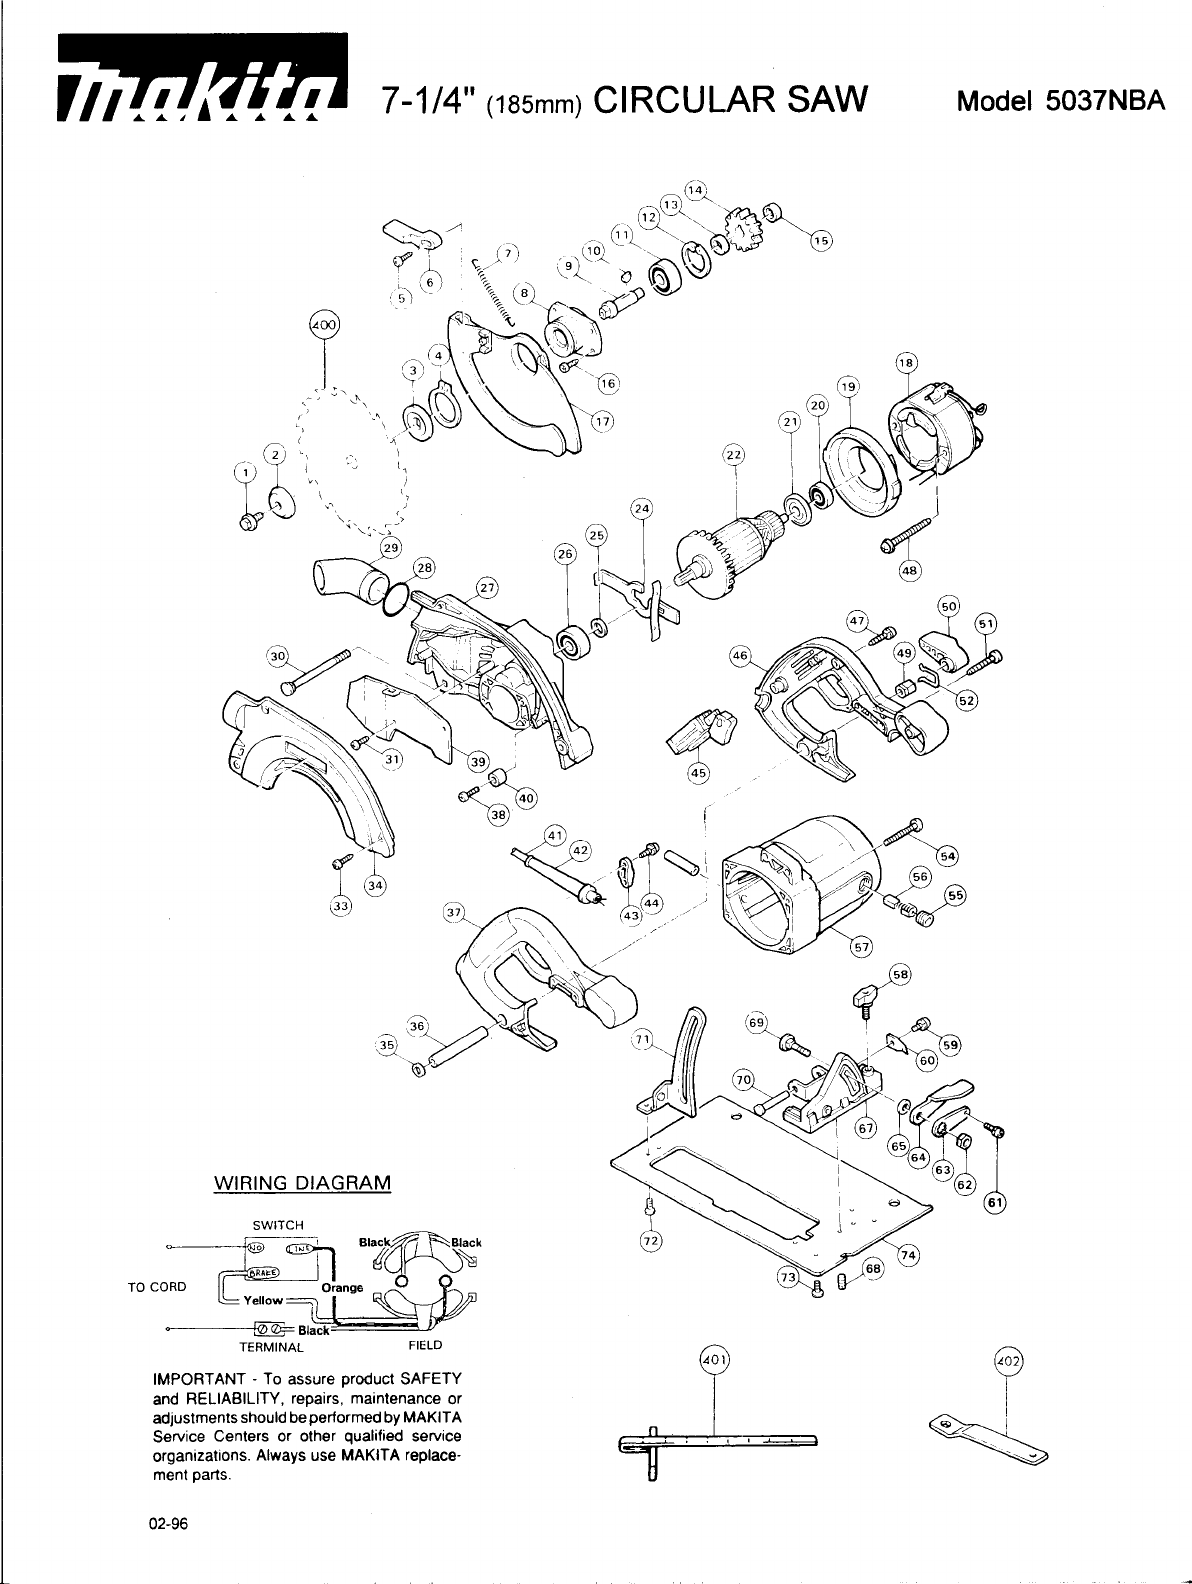 makita saw 5037nba user guide